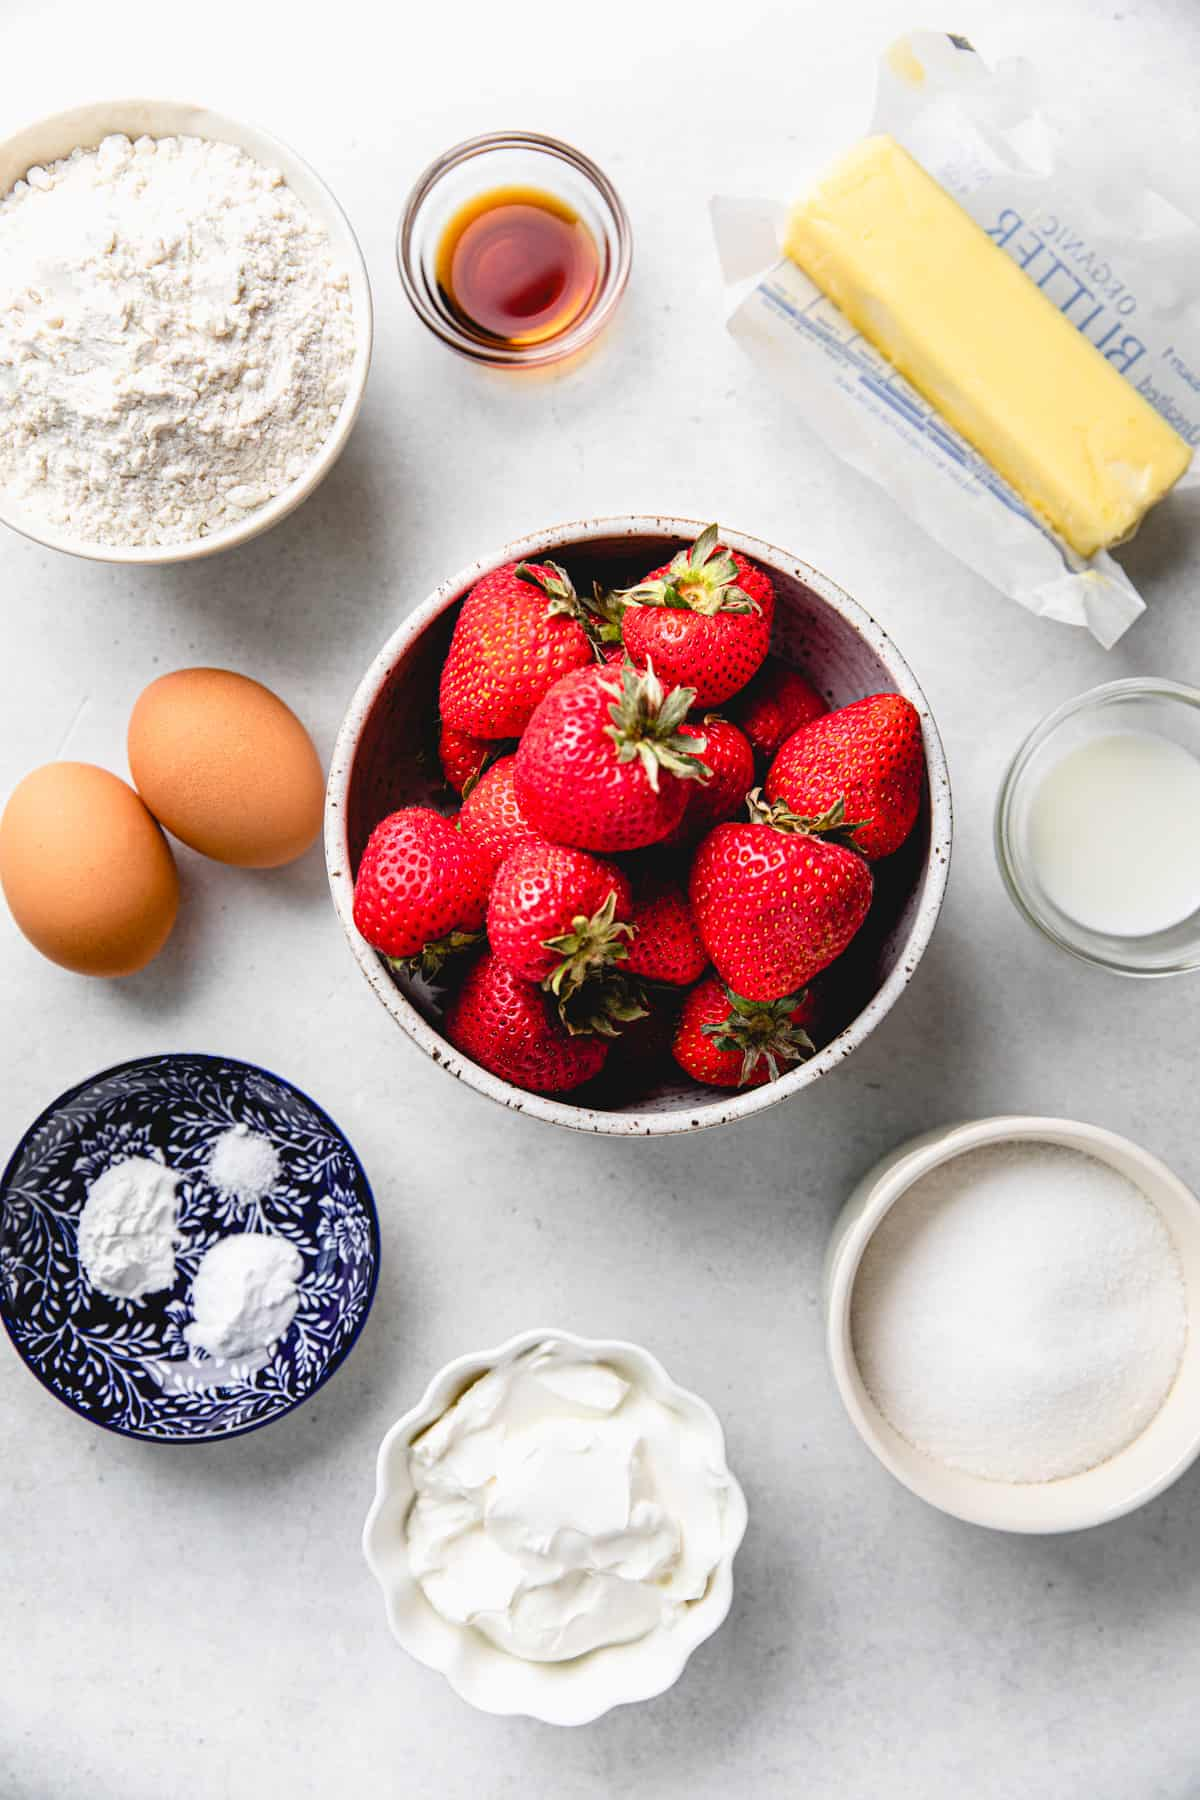 Ingredients for Vanilla Strawberry Cake in separate bowls.